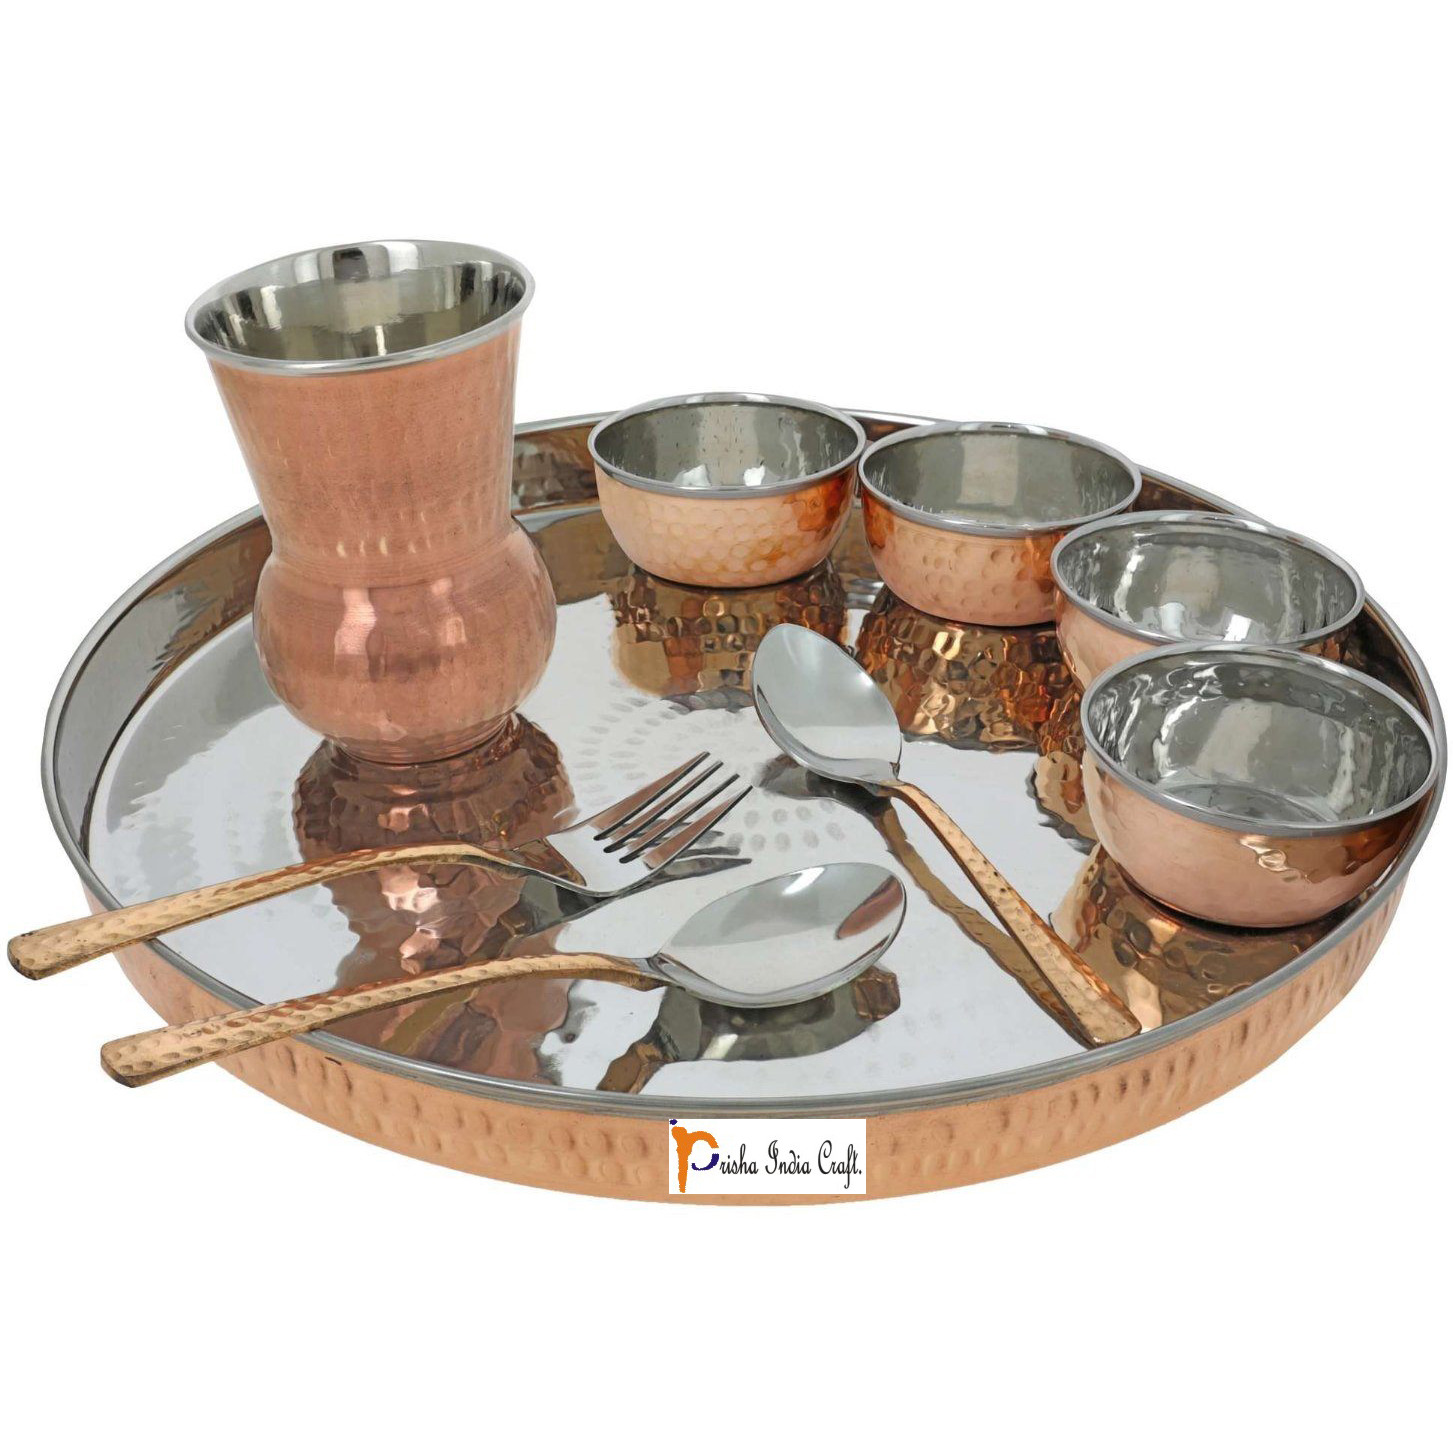 Prisha India Craft B. Set of 3 Dinnerware Traditional Stainless Steel Copper Dinner Set of Thali Plate, Bowls, Glass and Spoons, Dia 13  With 1 Pure Copper Classic Pitcher Jug - Christmas Gift